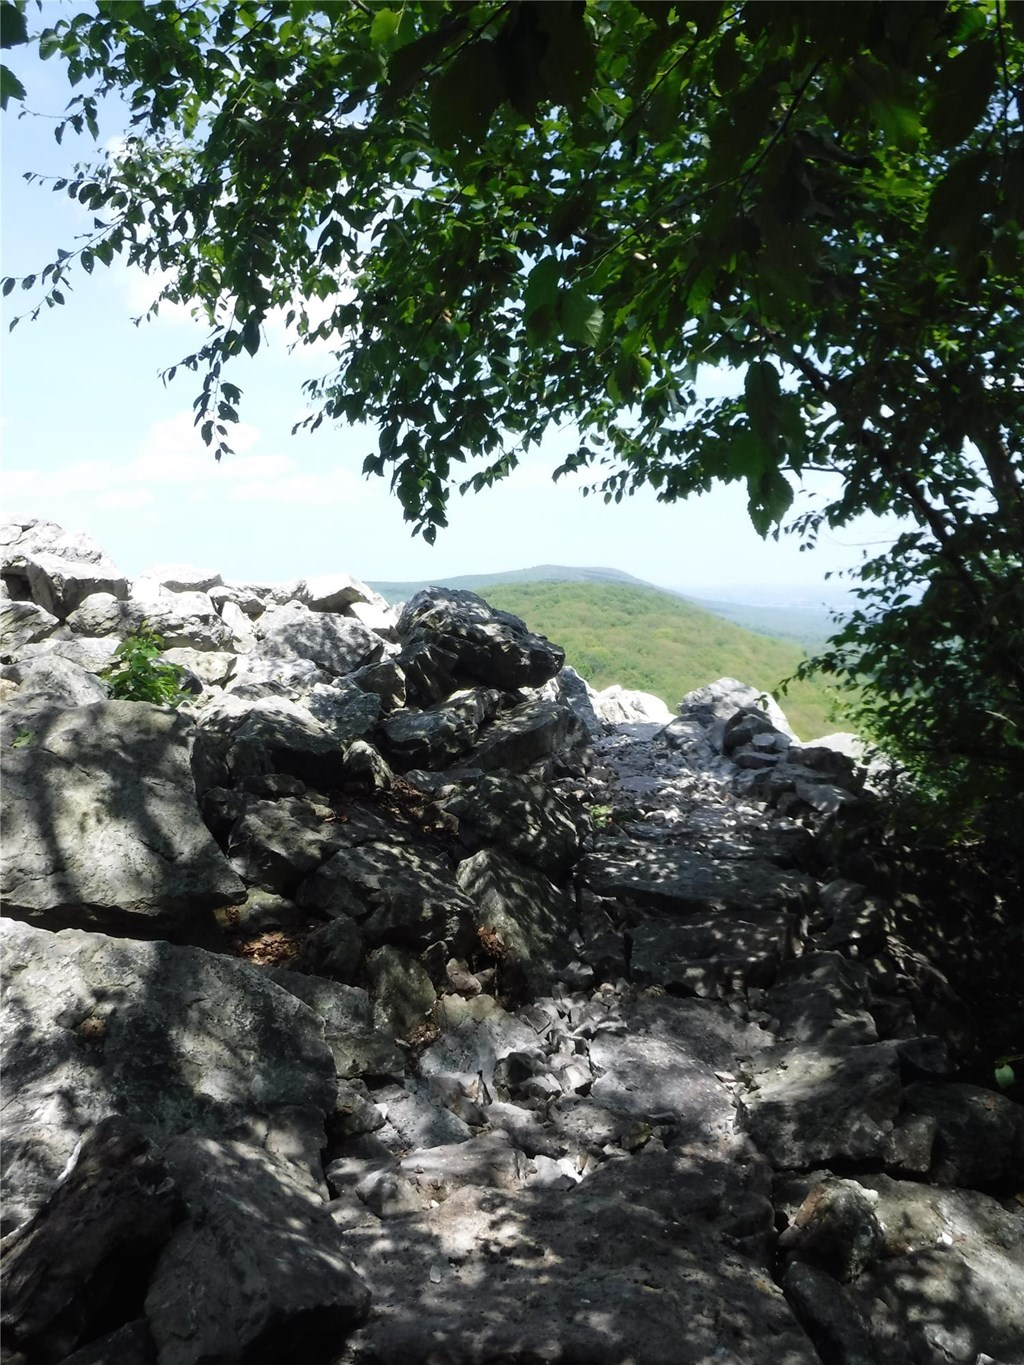 View of the Mountain through trees and boulders